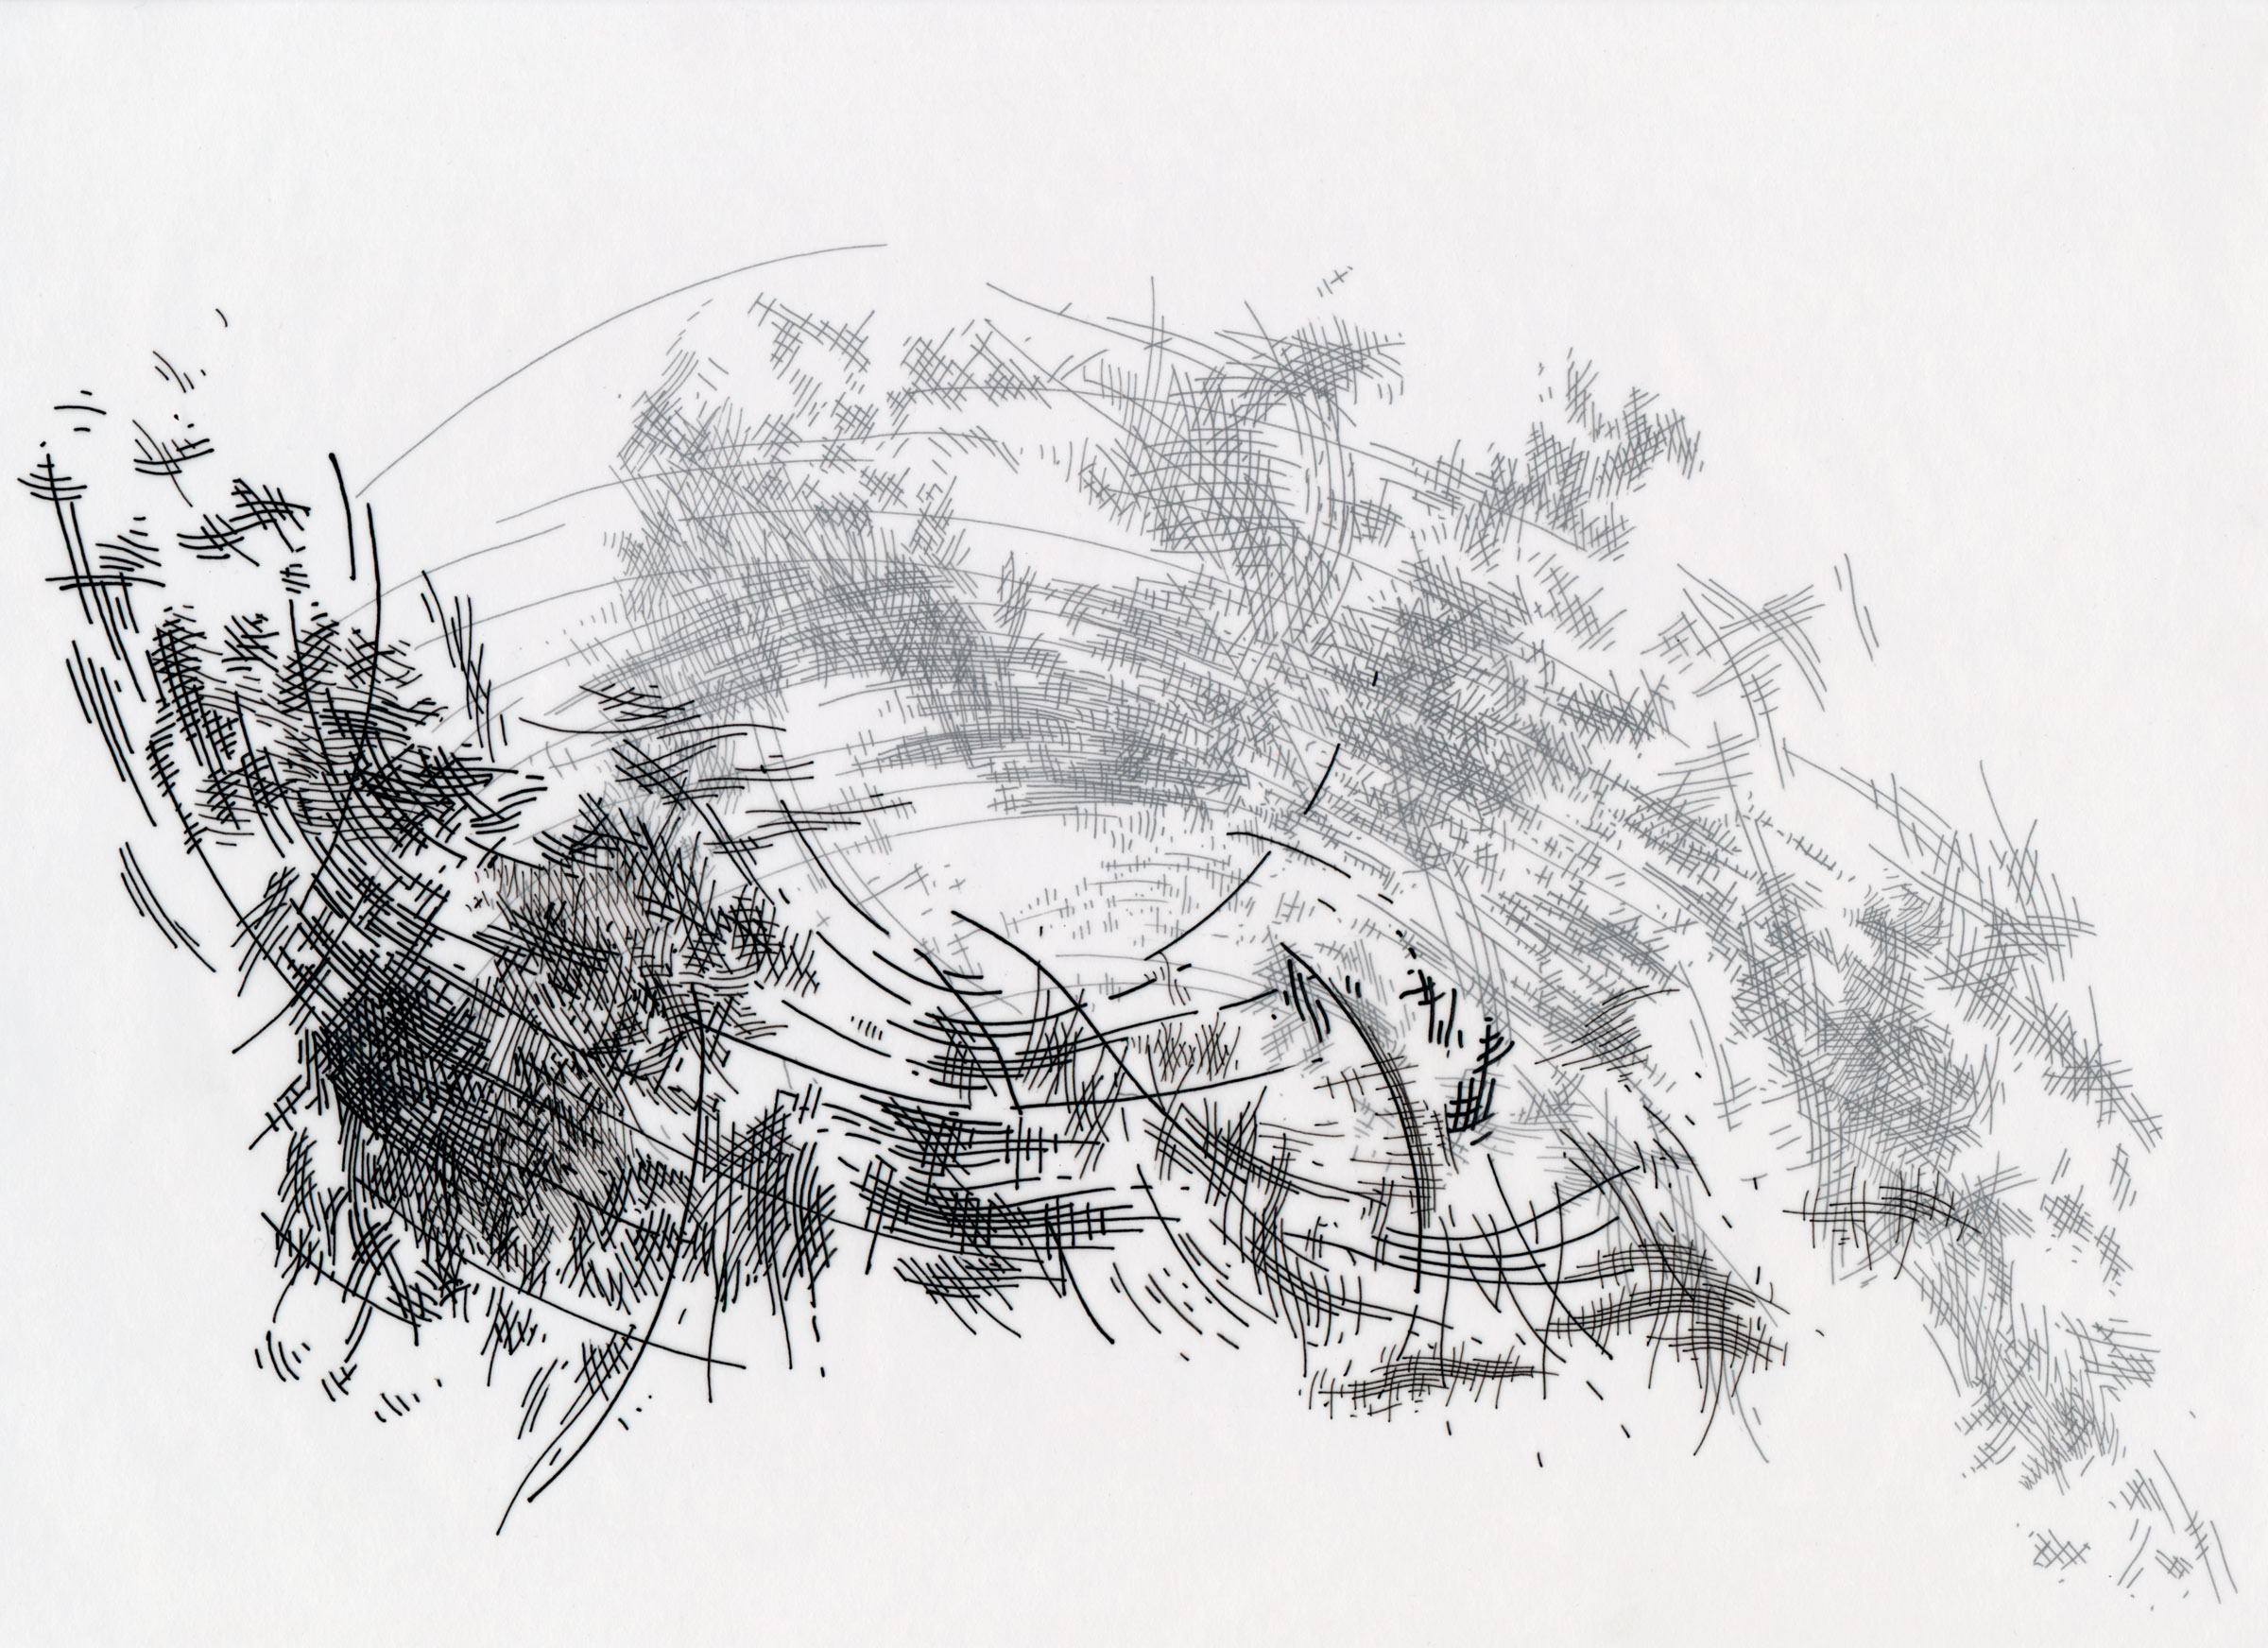 """Session Drawing 7, Pen and Ink on Vellum, 9"""" x 12"""", 2012"""